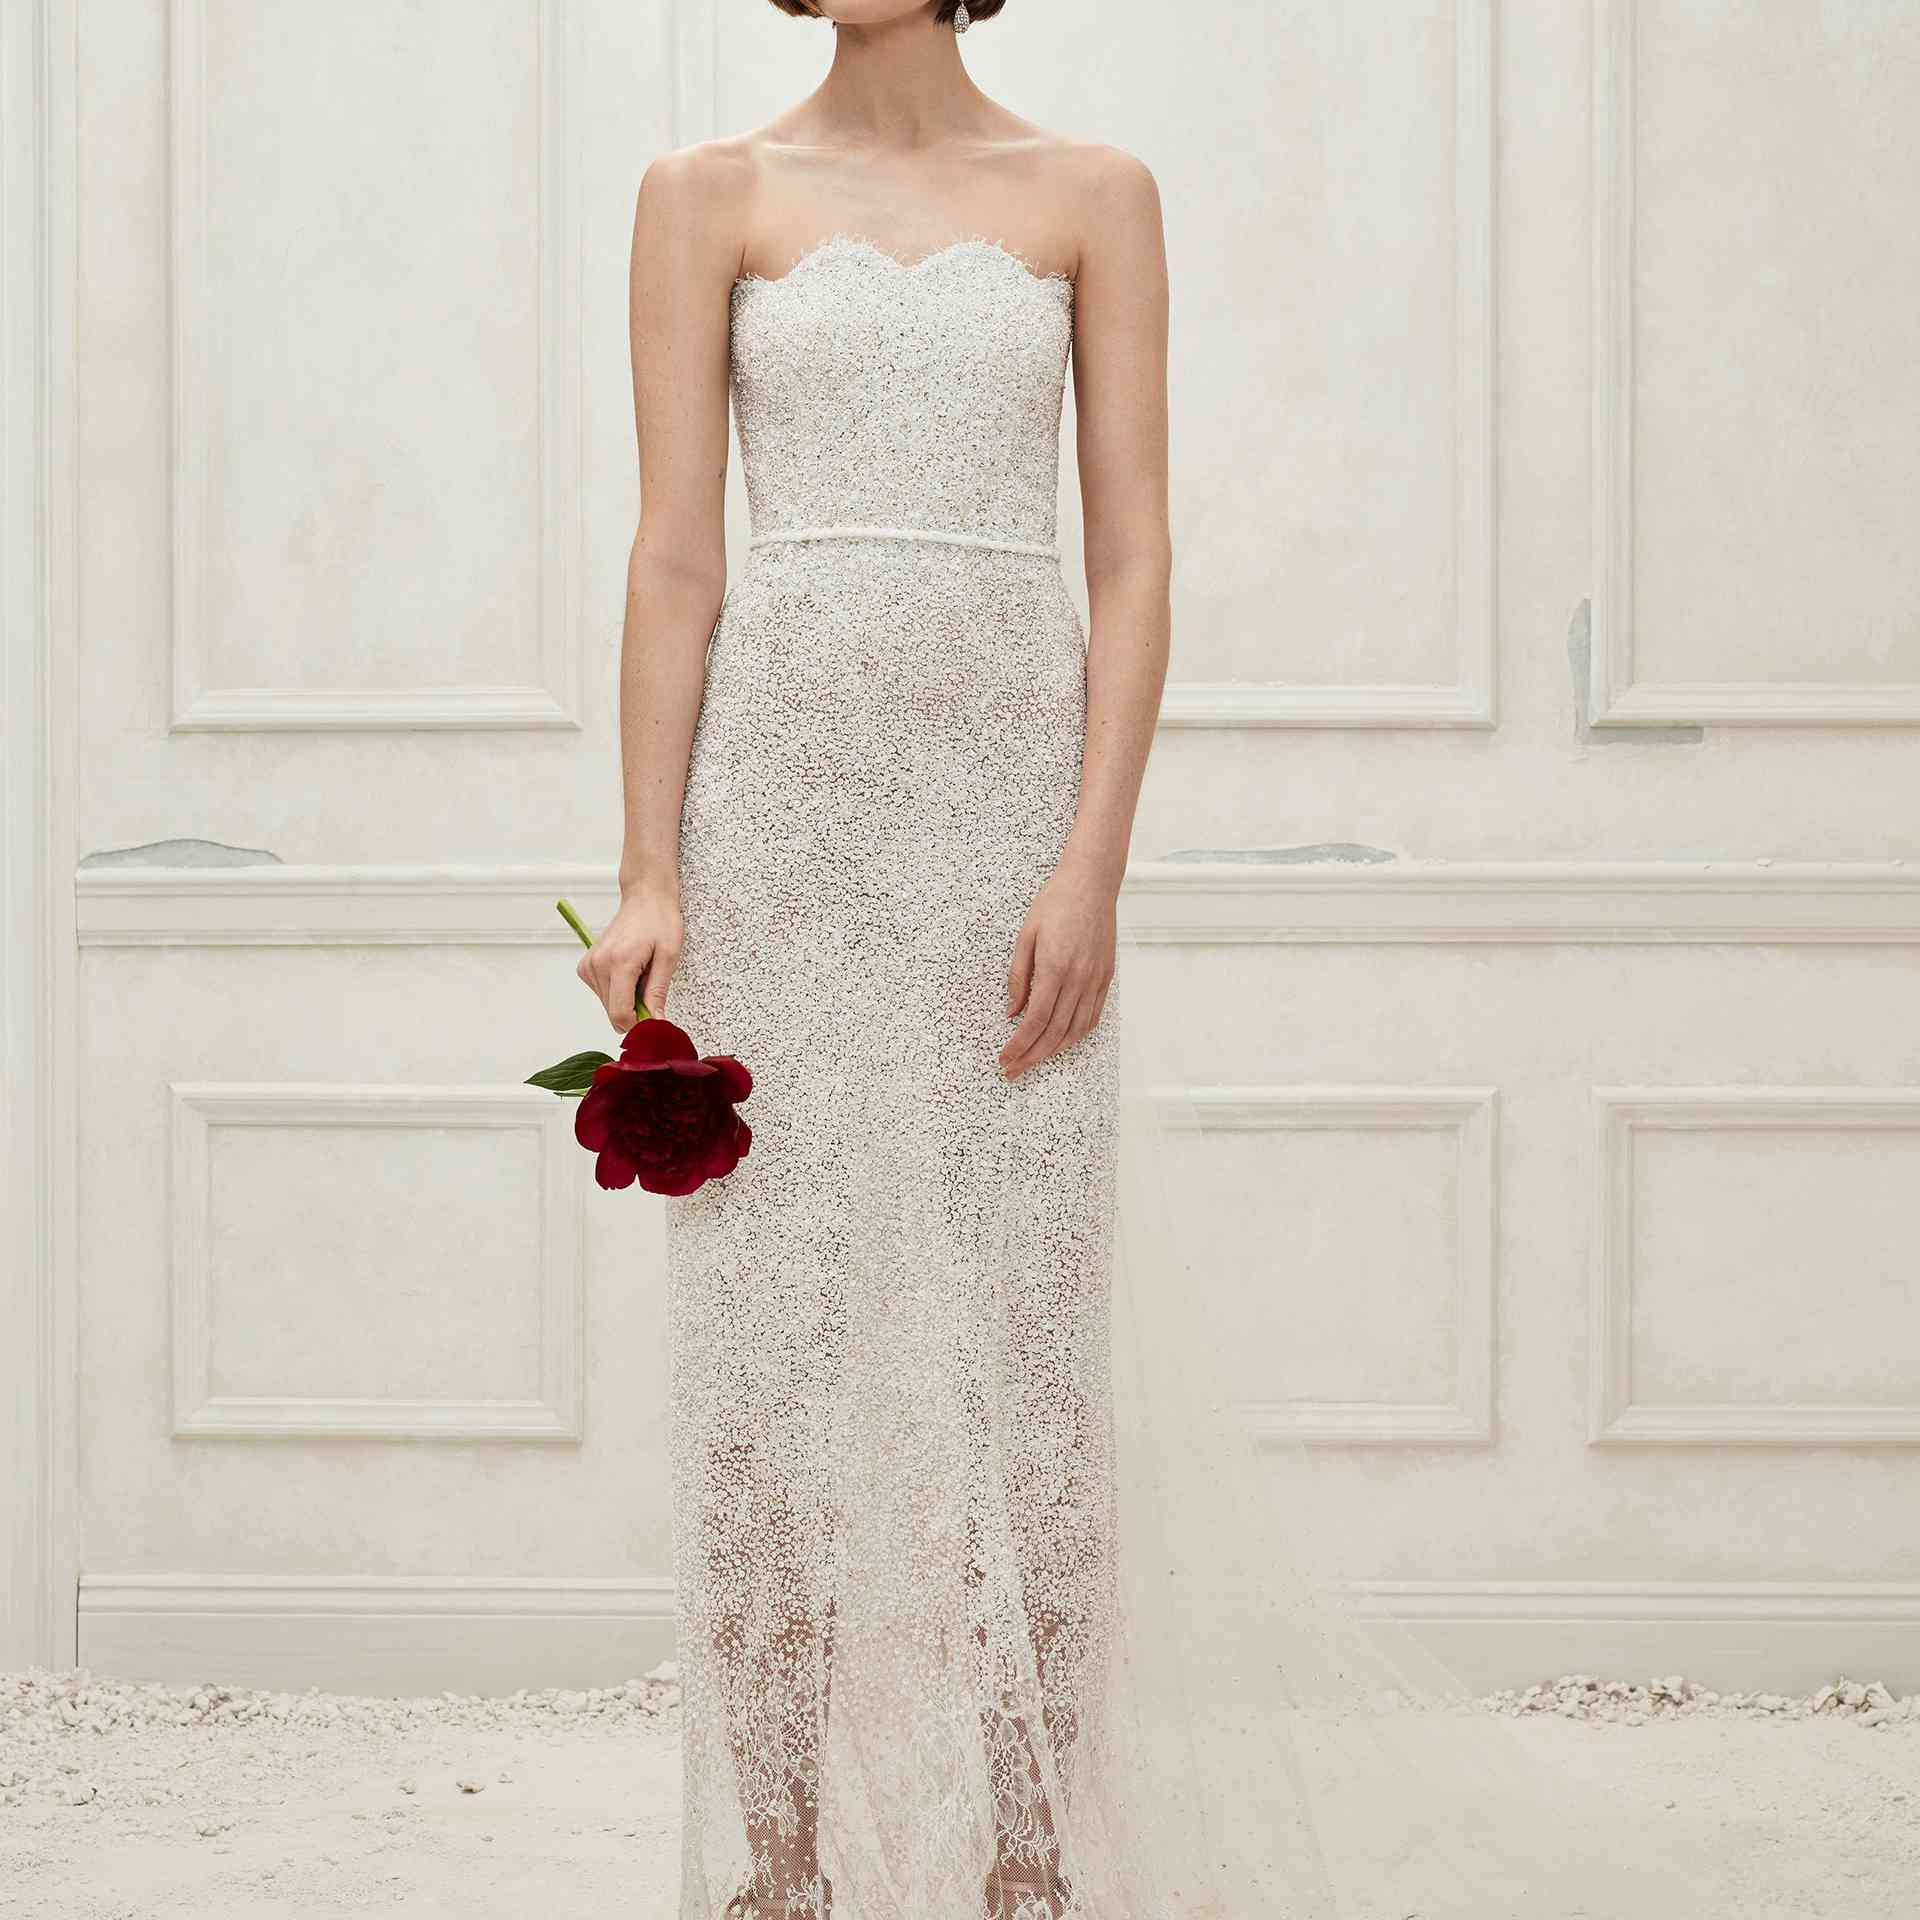 70 Sparkly Wedding Dresses For The Glamorous Bride